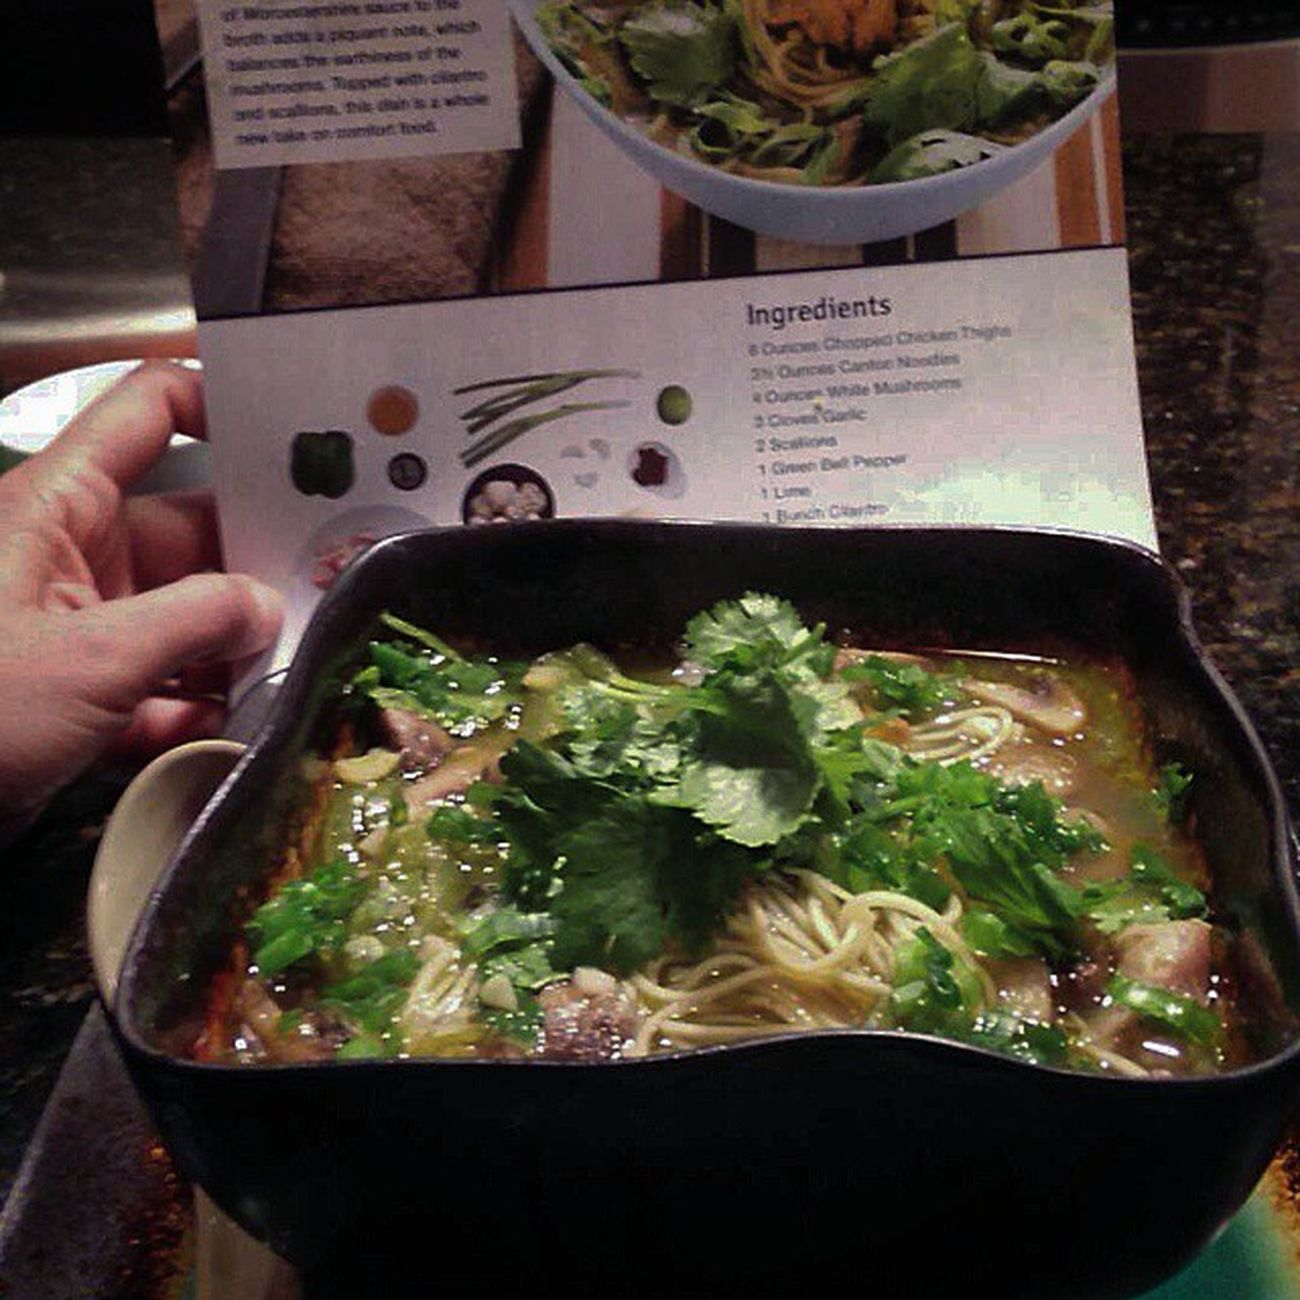 Spicythai Chickennoodlesoup Blueapron Farmtotable organiclife tasteslikepho soup nomnomnomnomnommmm